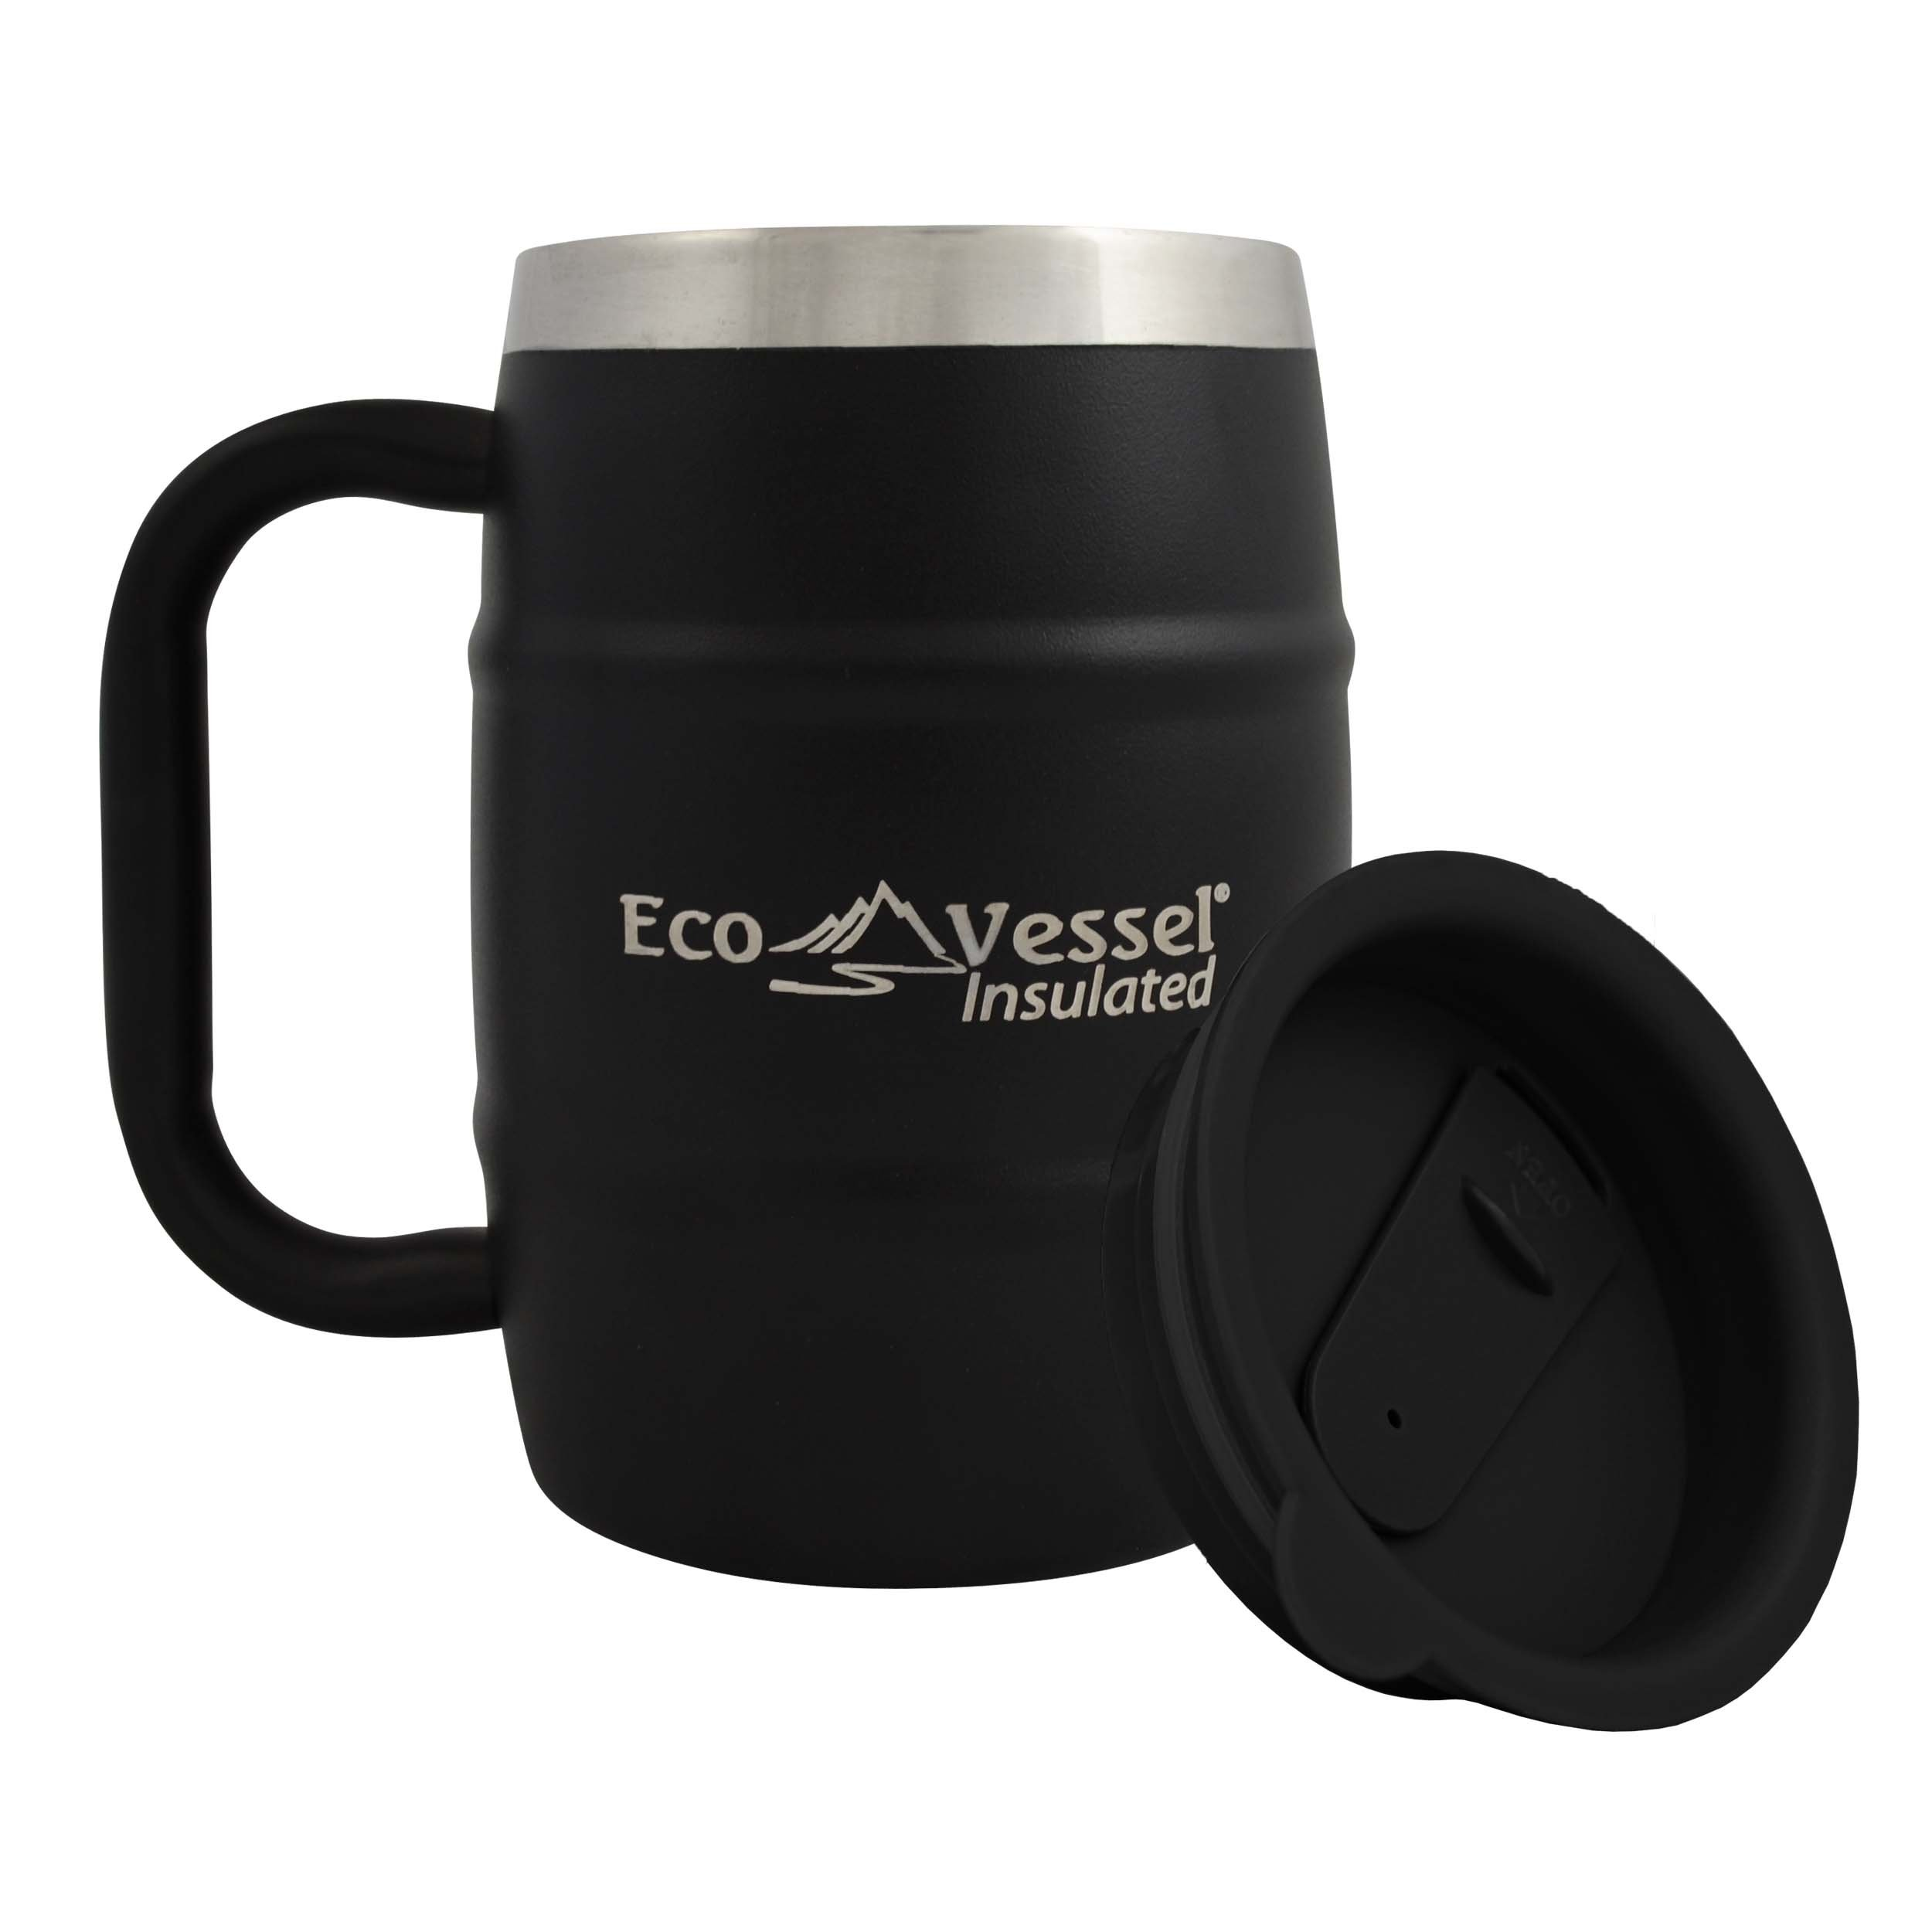 onyx black new travel stainless steel insulated lid cup tumbler large coffee mug ebay. Black Bedroom Furniture Sets. Home Design Ideas